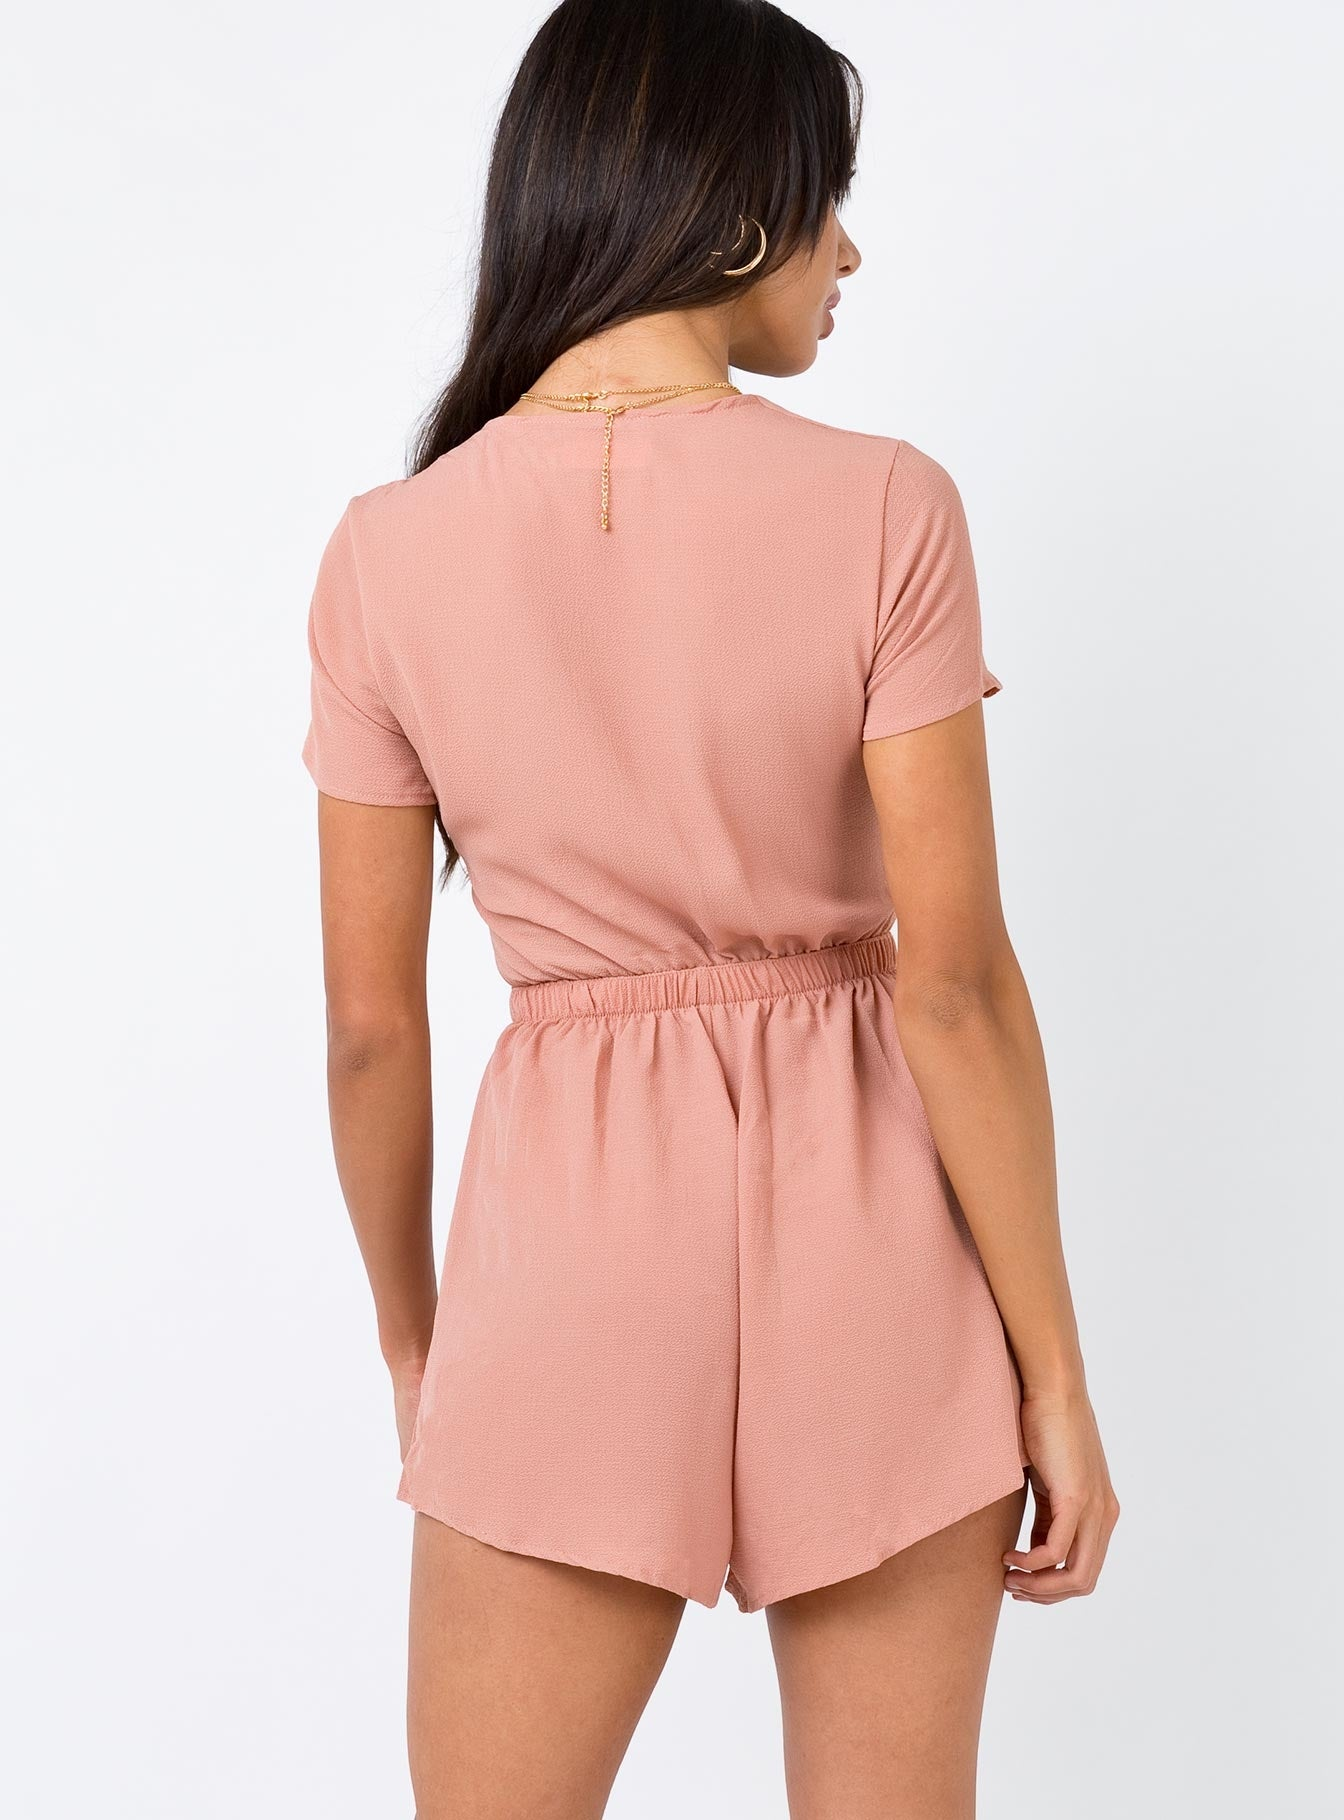 The Kita Playsuit Blush